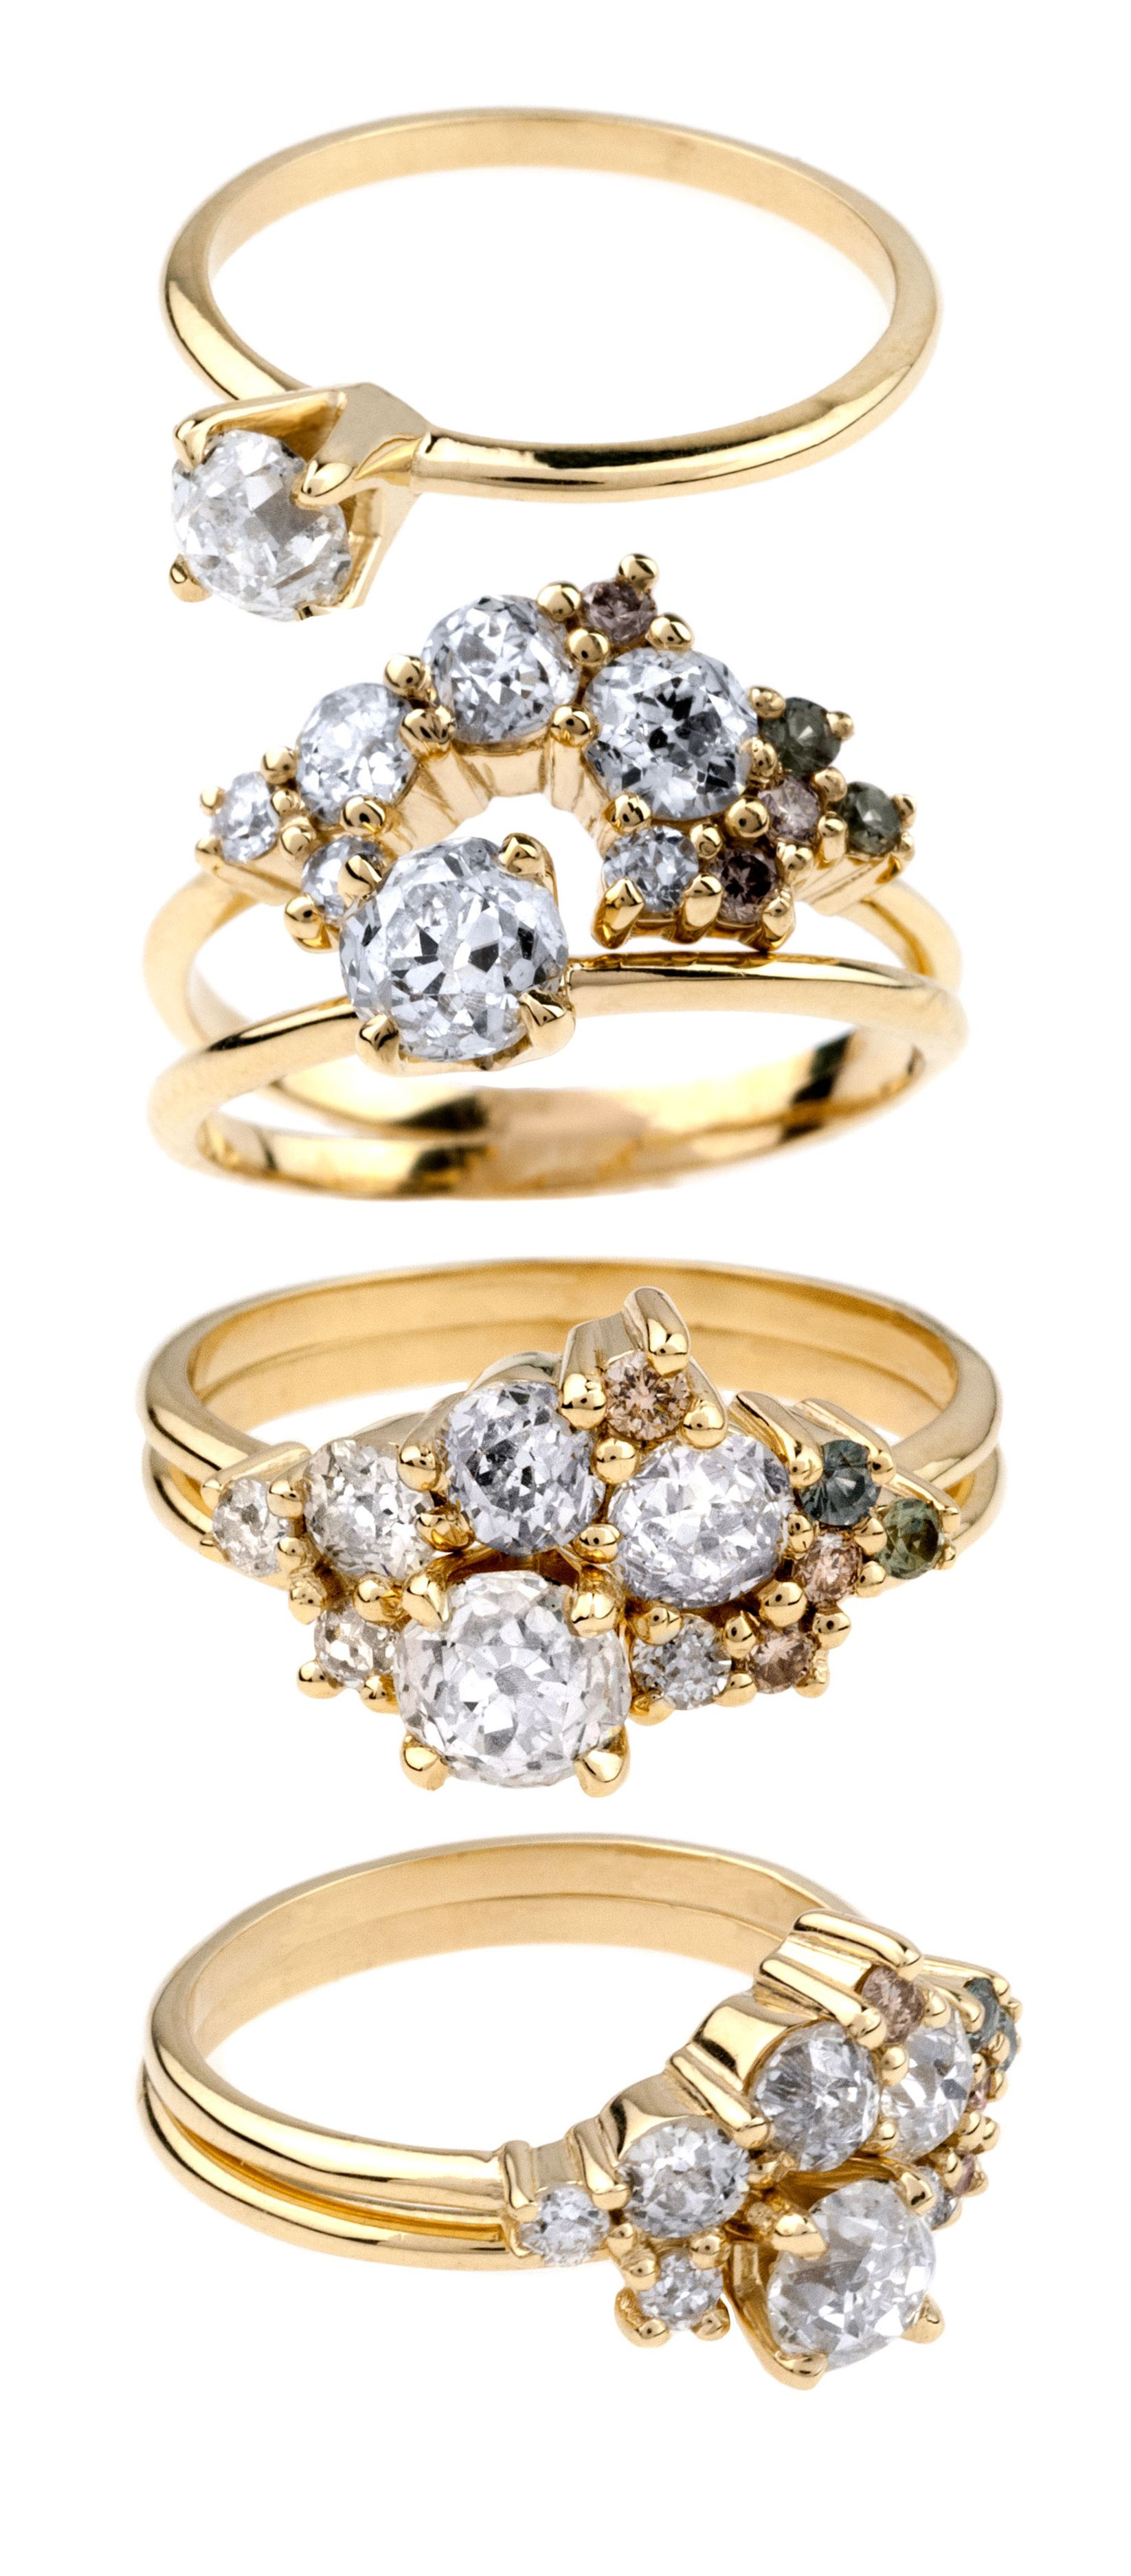 This incredible Custom Ombré Heirloom Cluster Ring Set features a